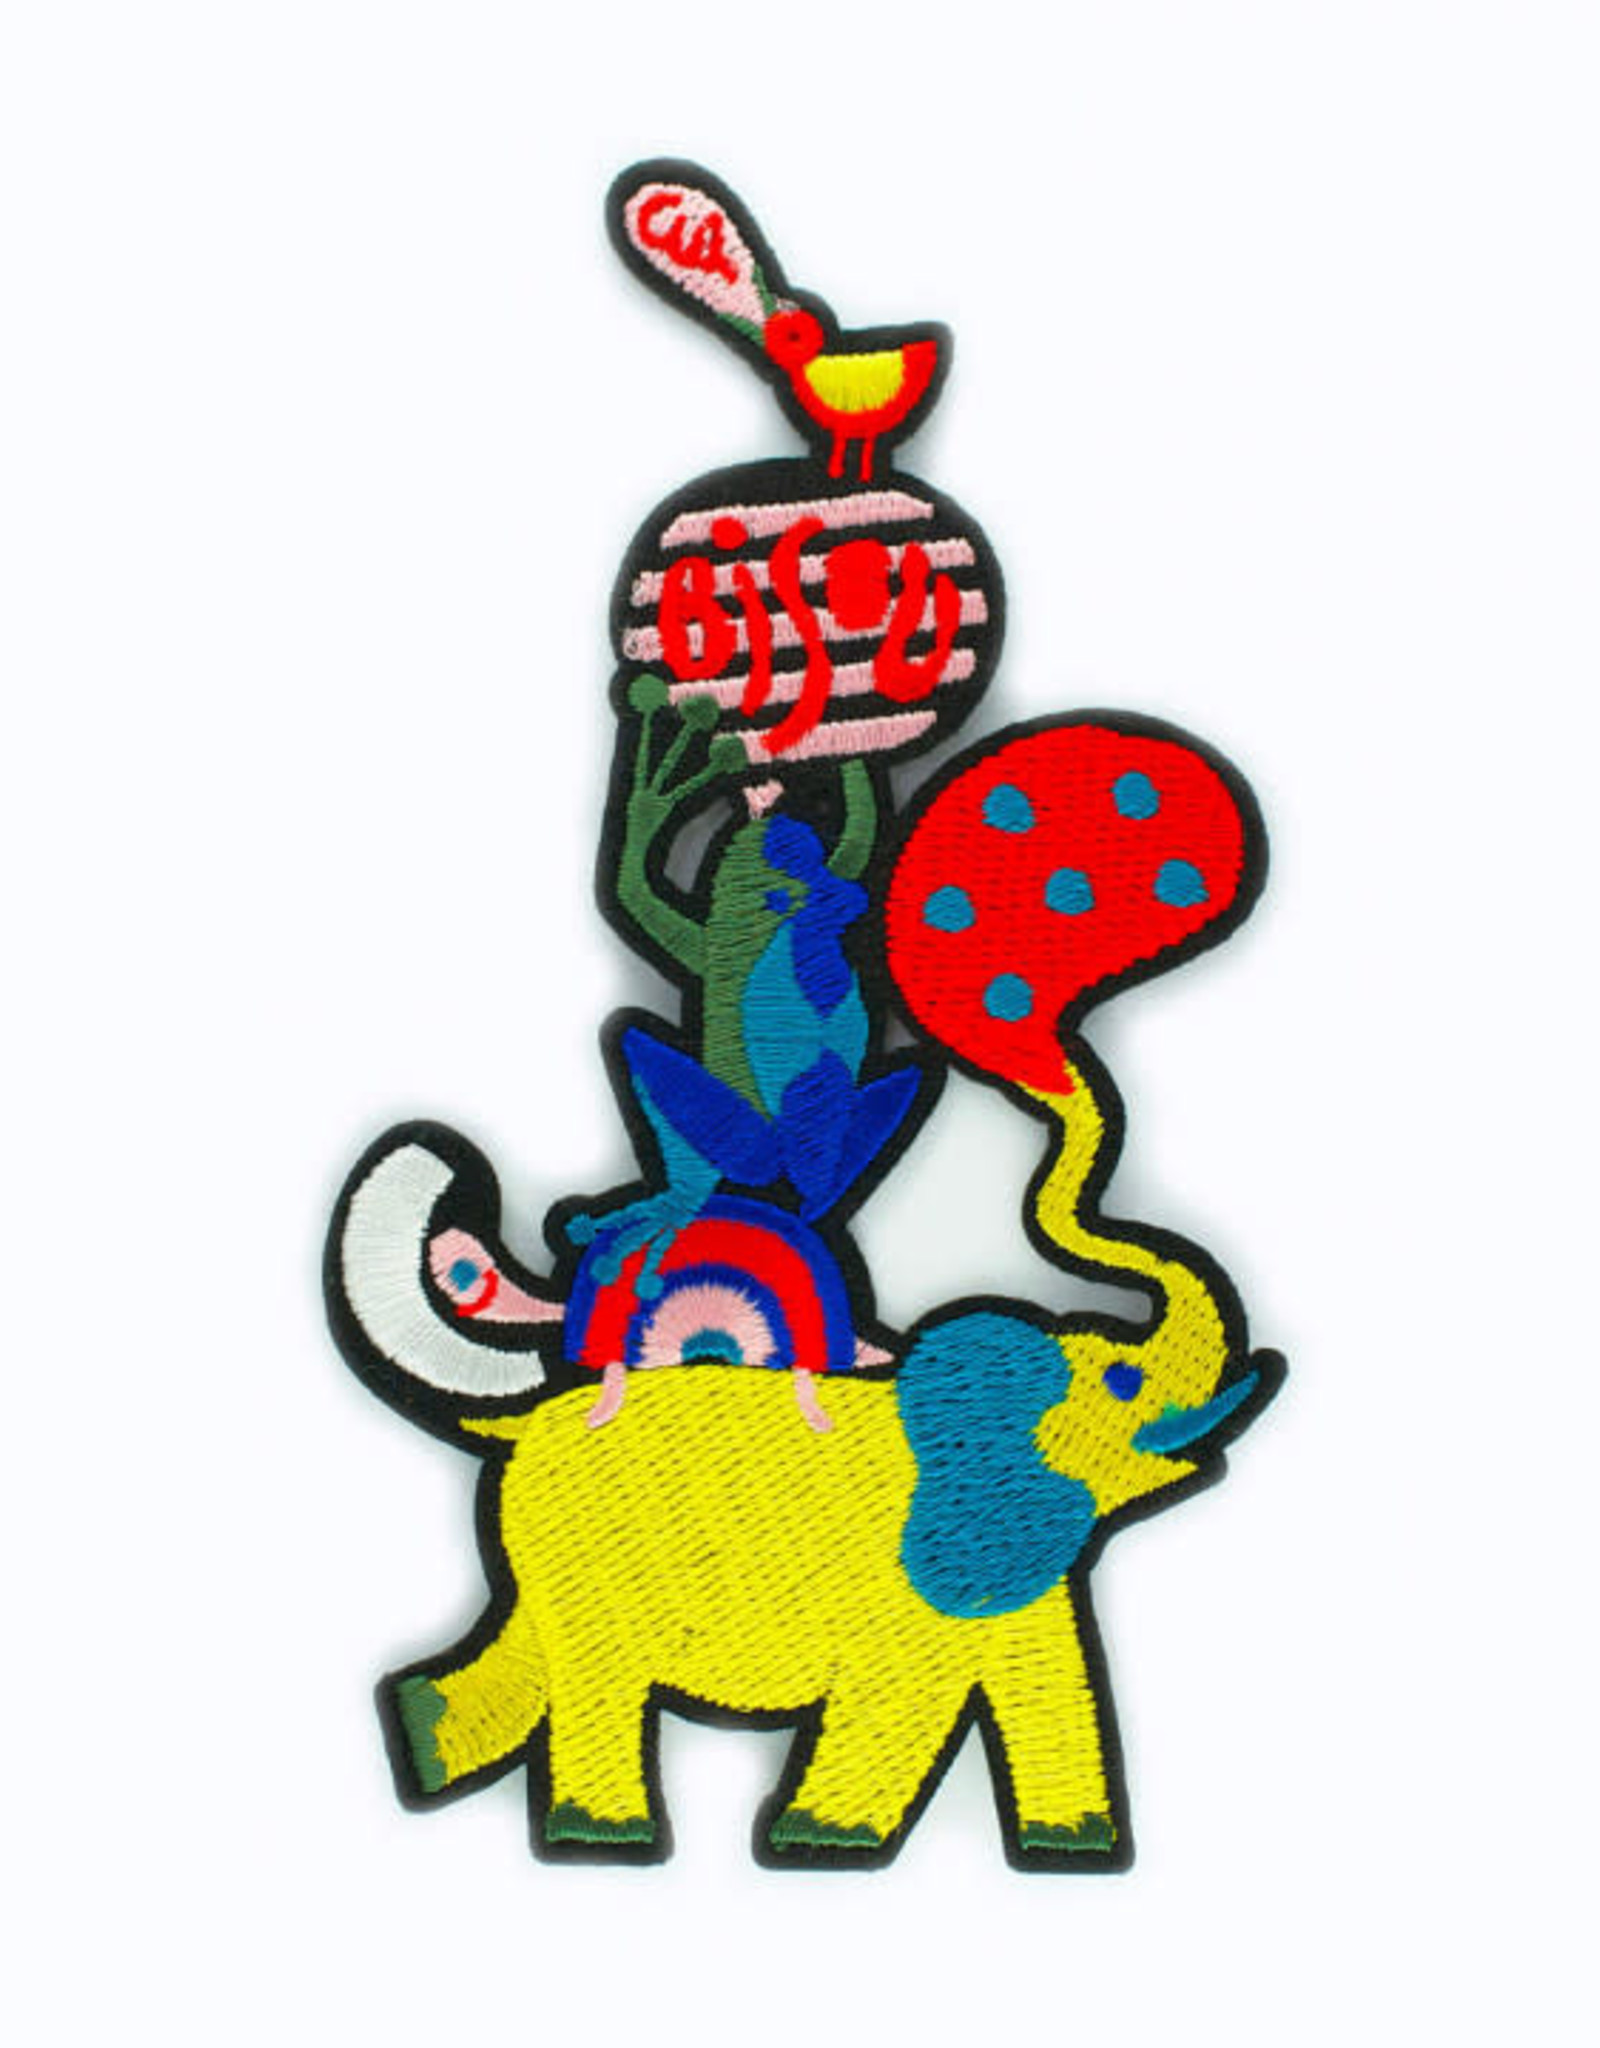 Macon&Lesquoy Patch - Large patch animal pyramid